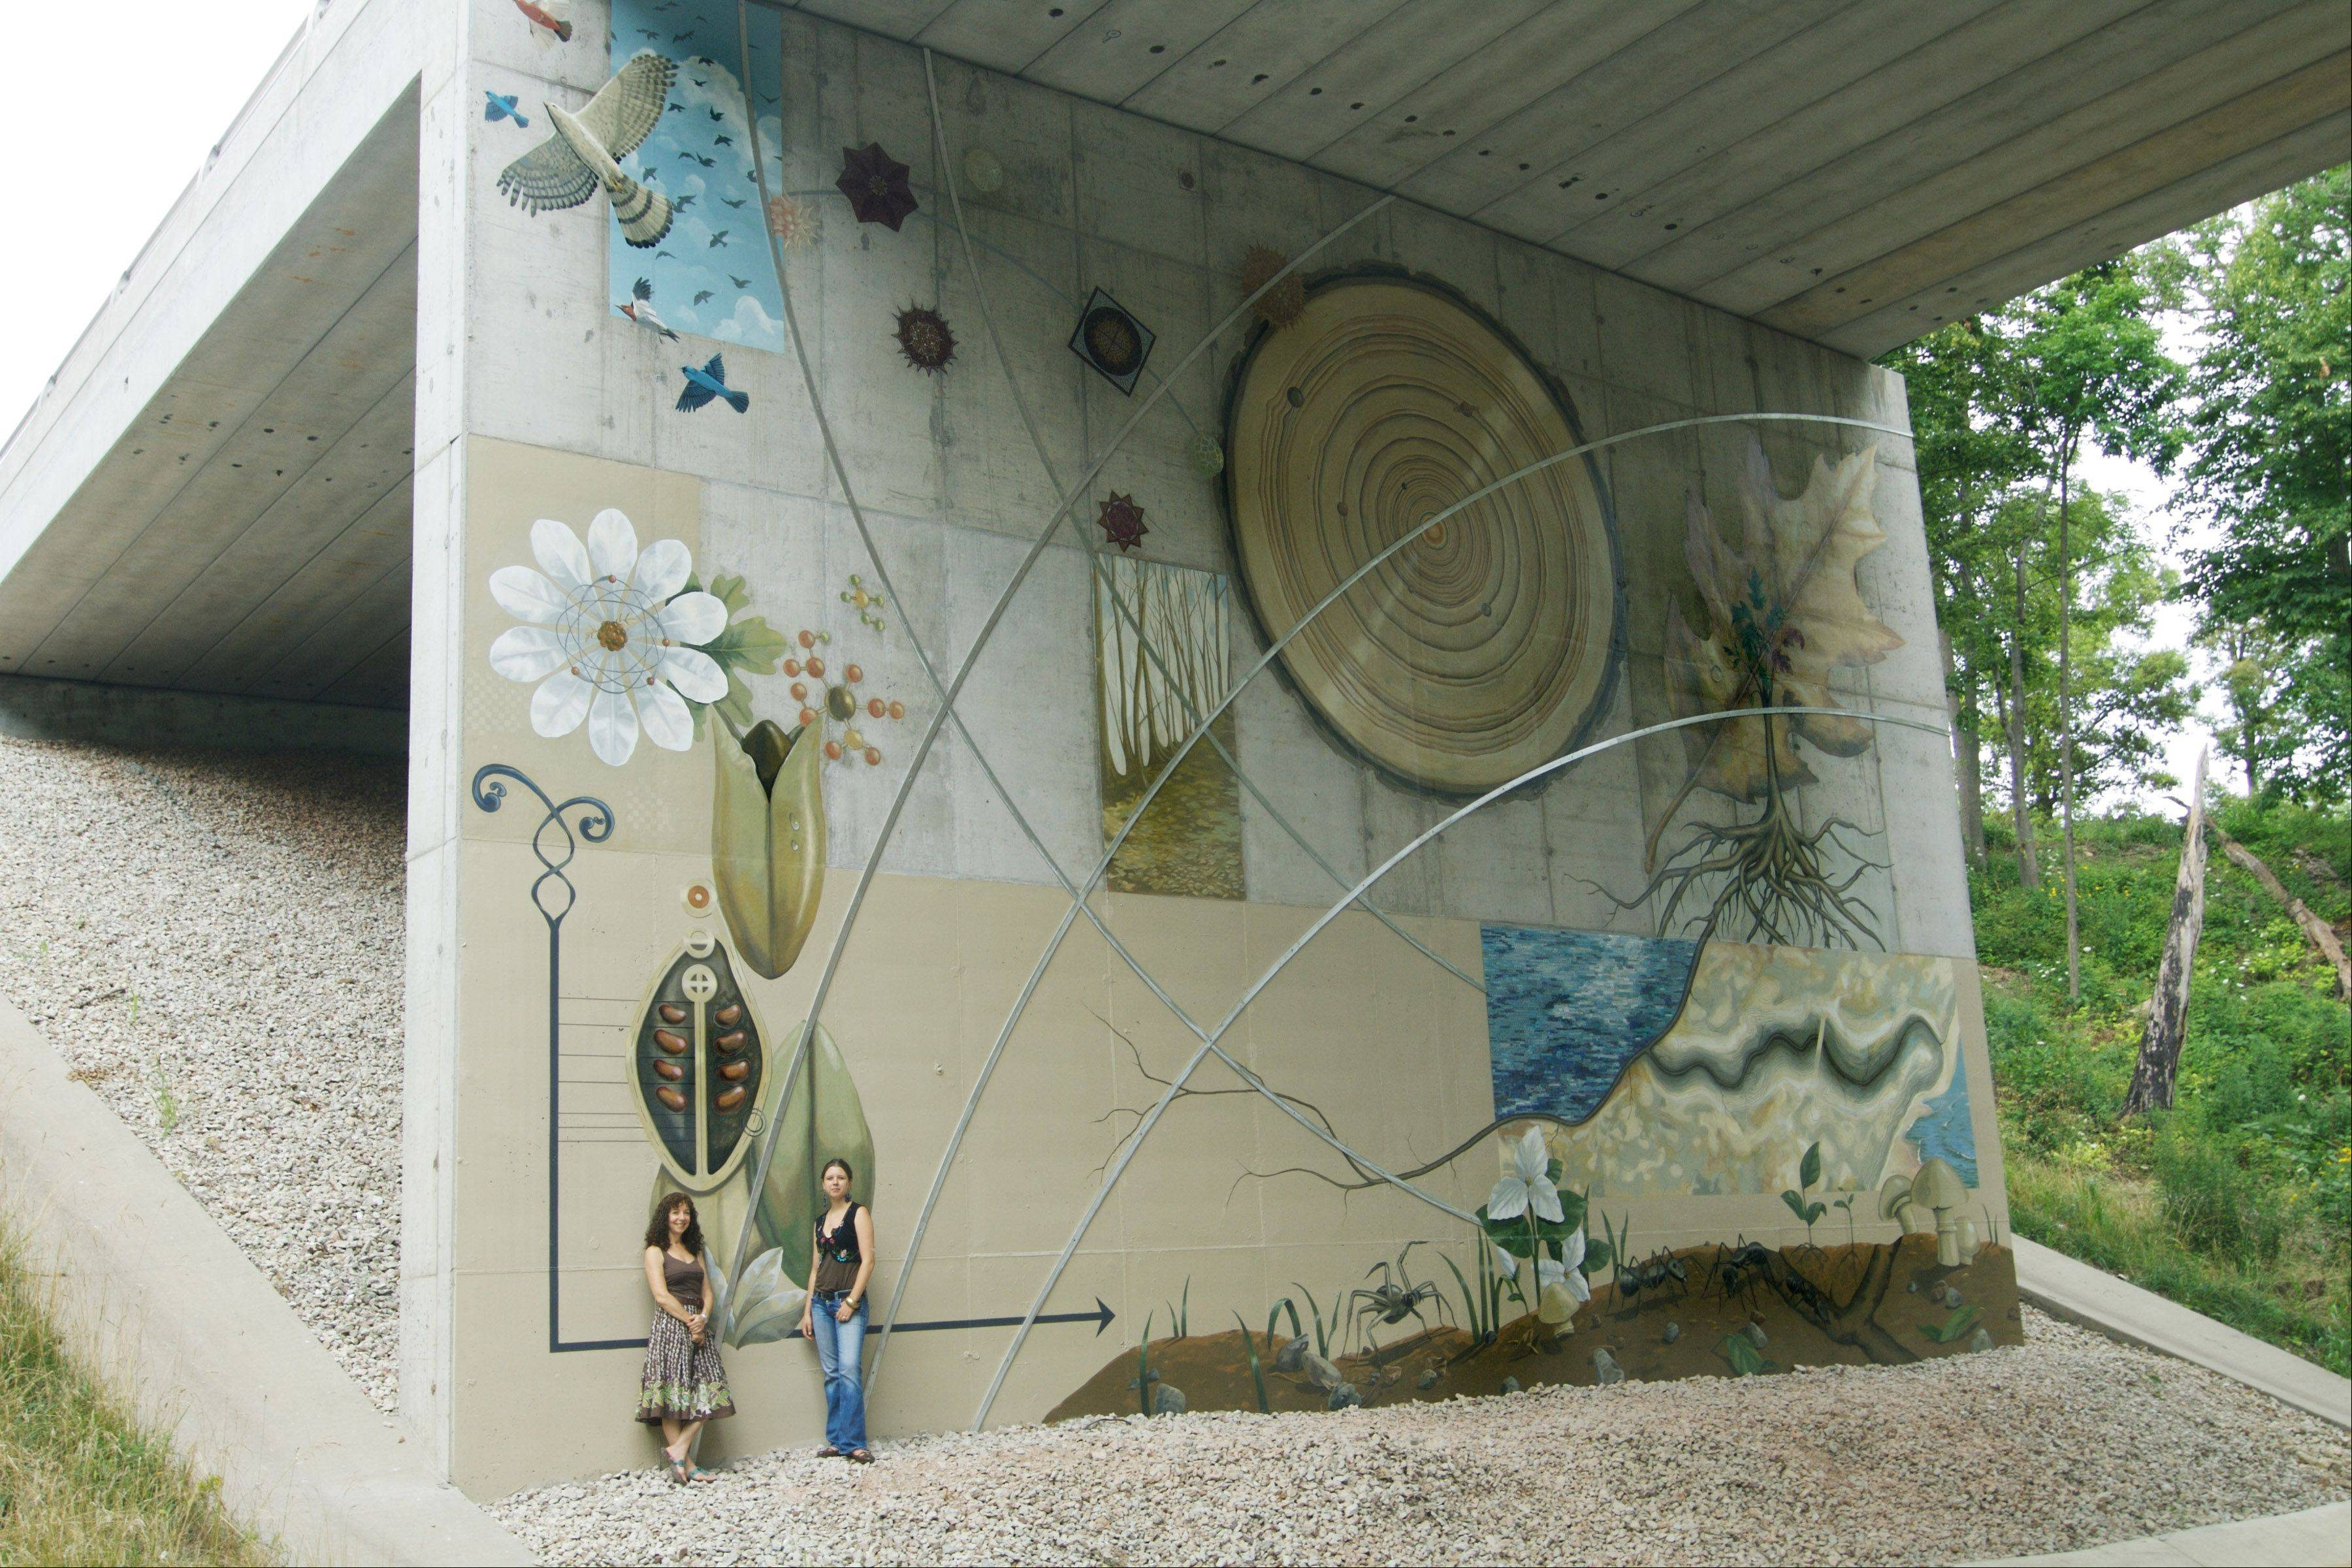 Site-specific artwork, such as the Arc of Nature mural, is a key element of the Openlands Northshore Preserve, which is part of the former Fort Sheridan military post in Highland Park.